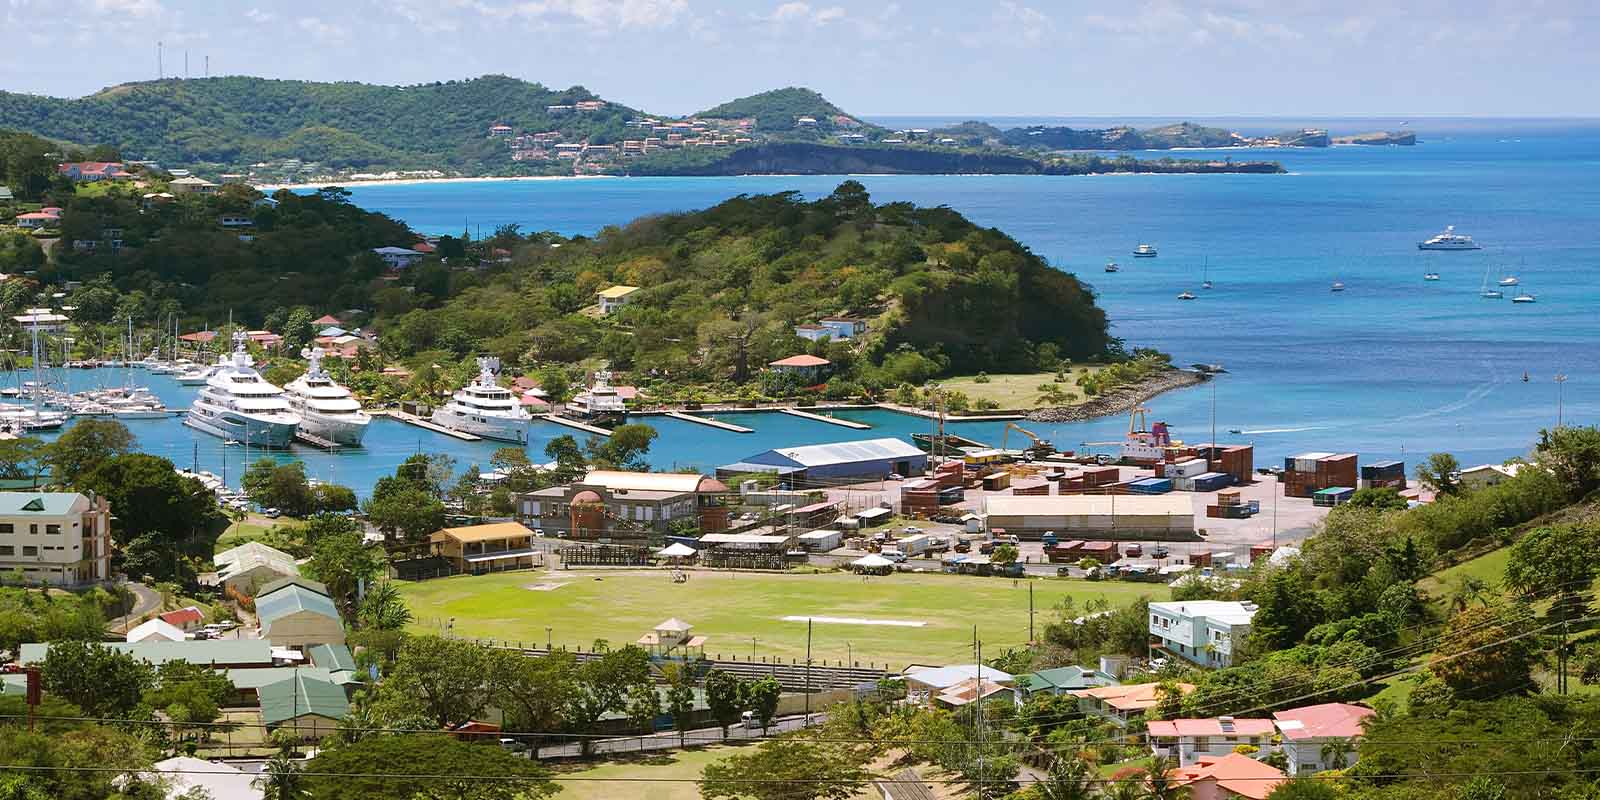 Aerial view of the Caribbean Island of Grenada.